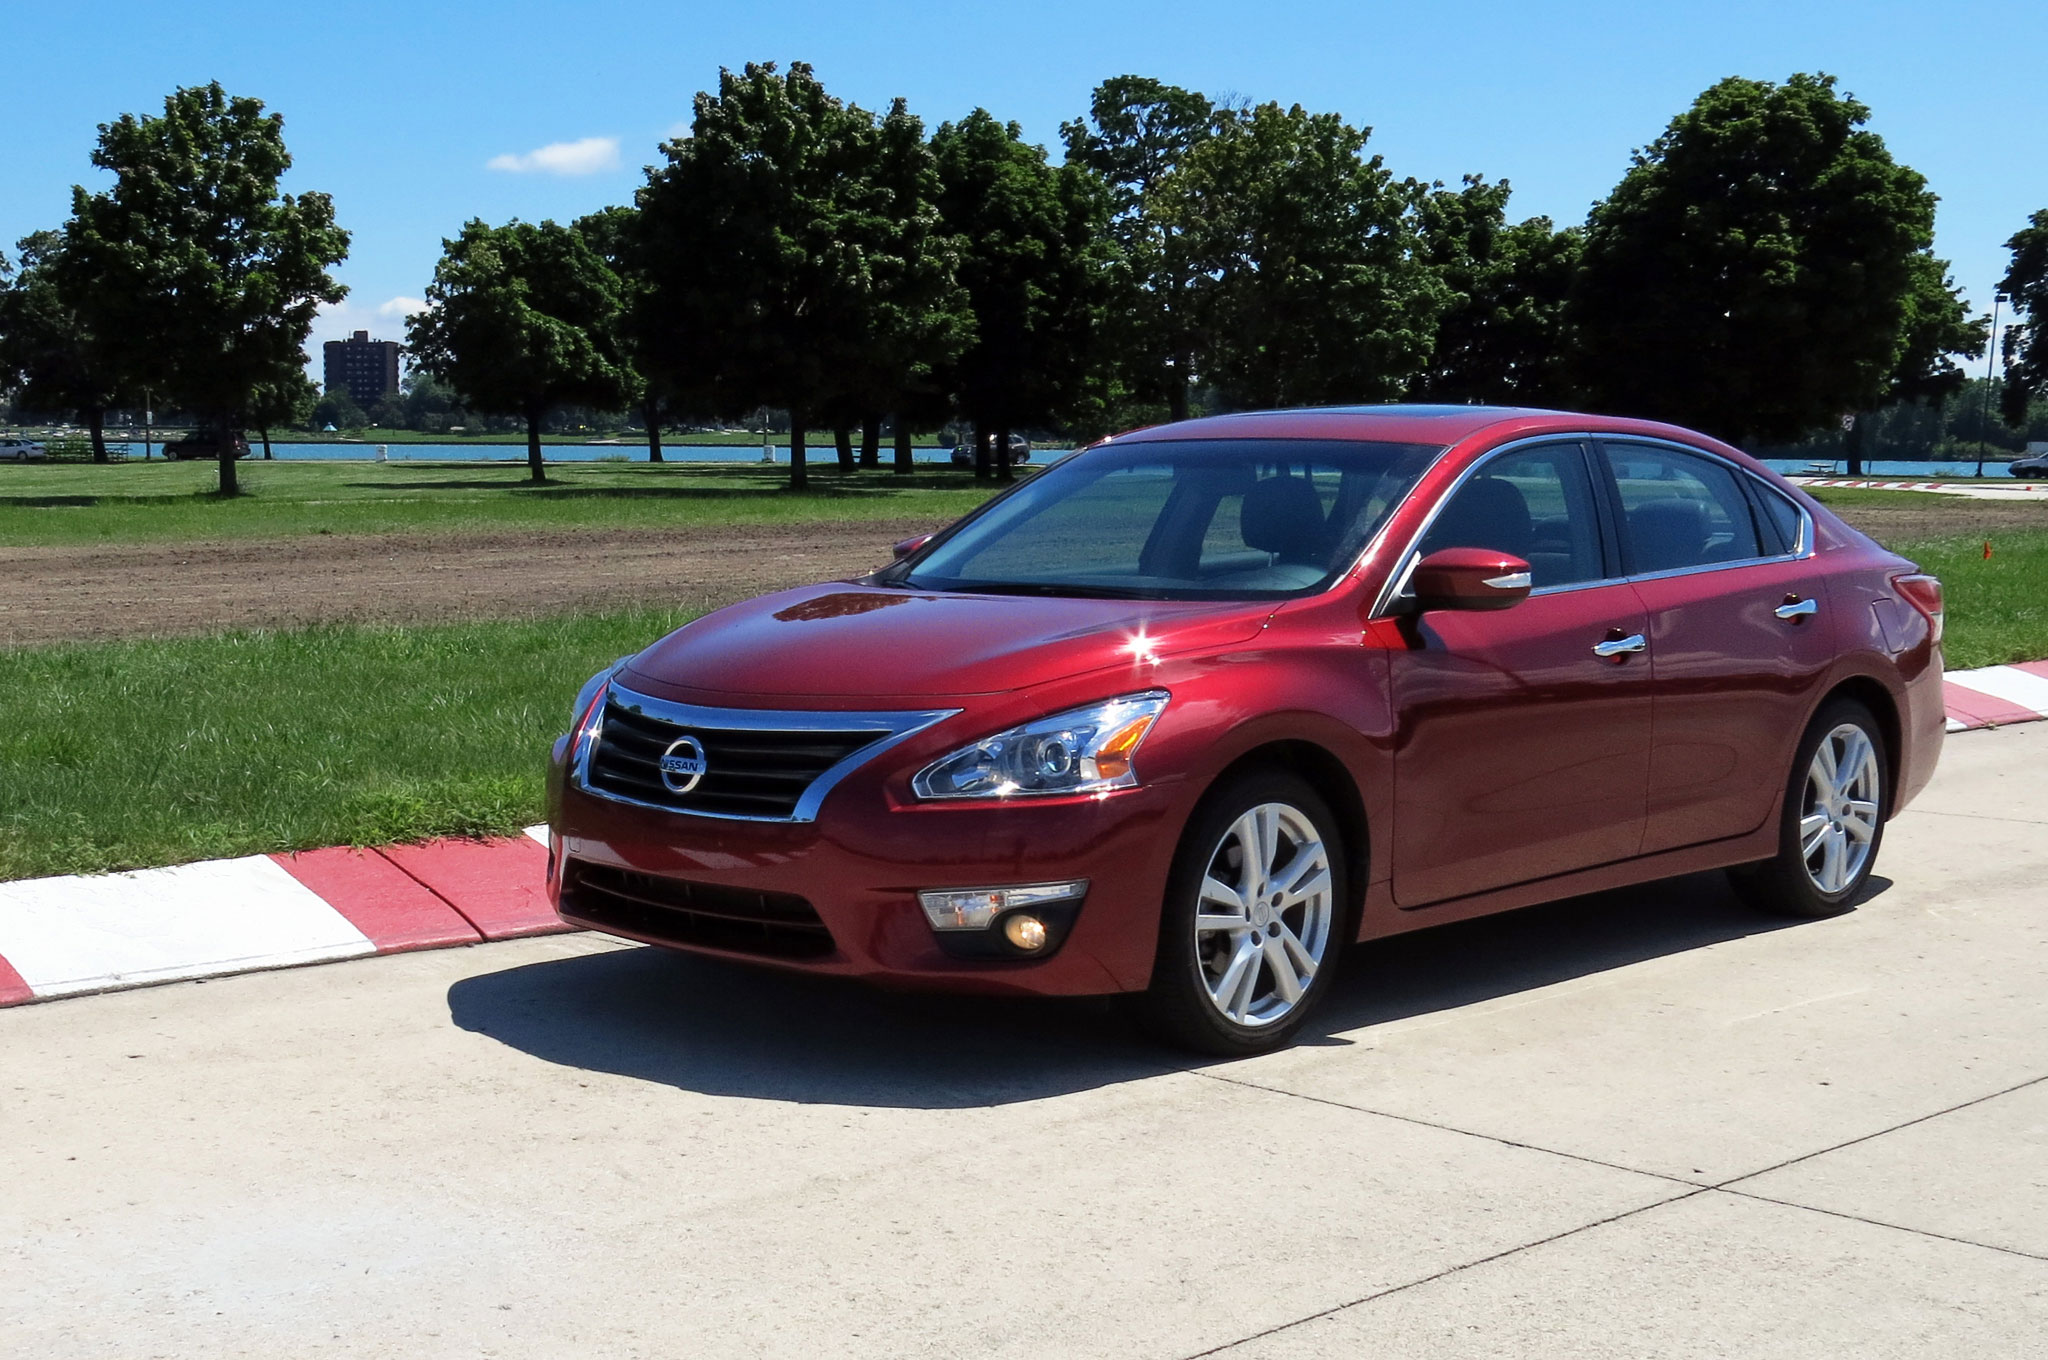 2013 Nissan Altima 3 5 SL Front Left Side View 21